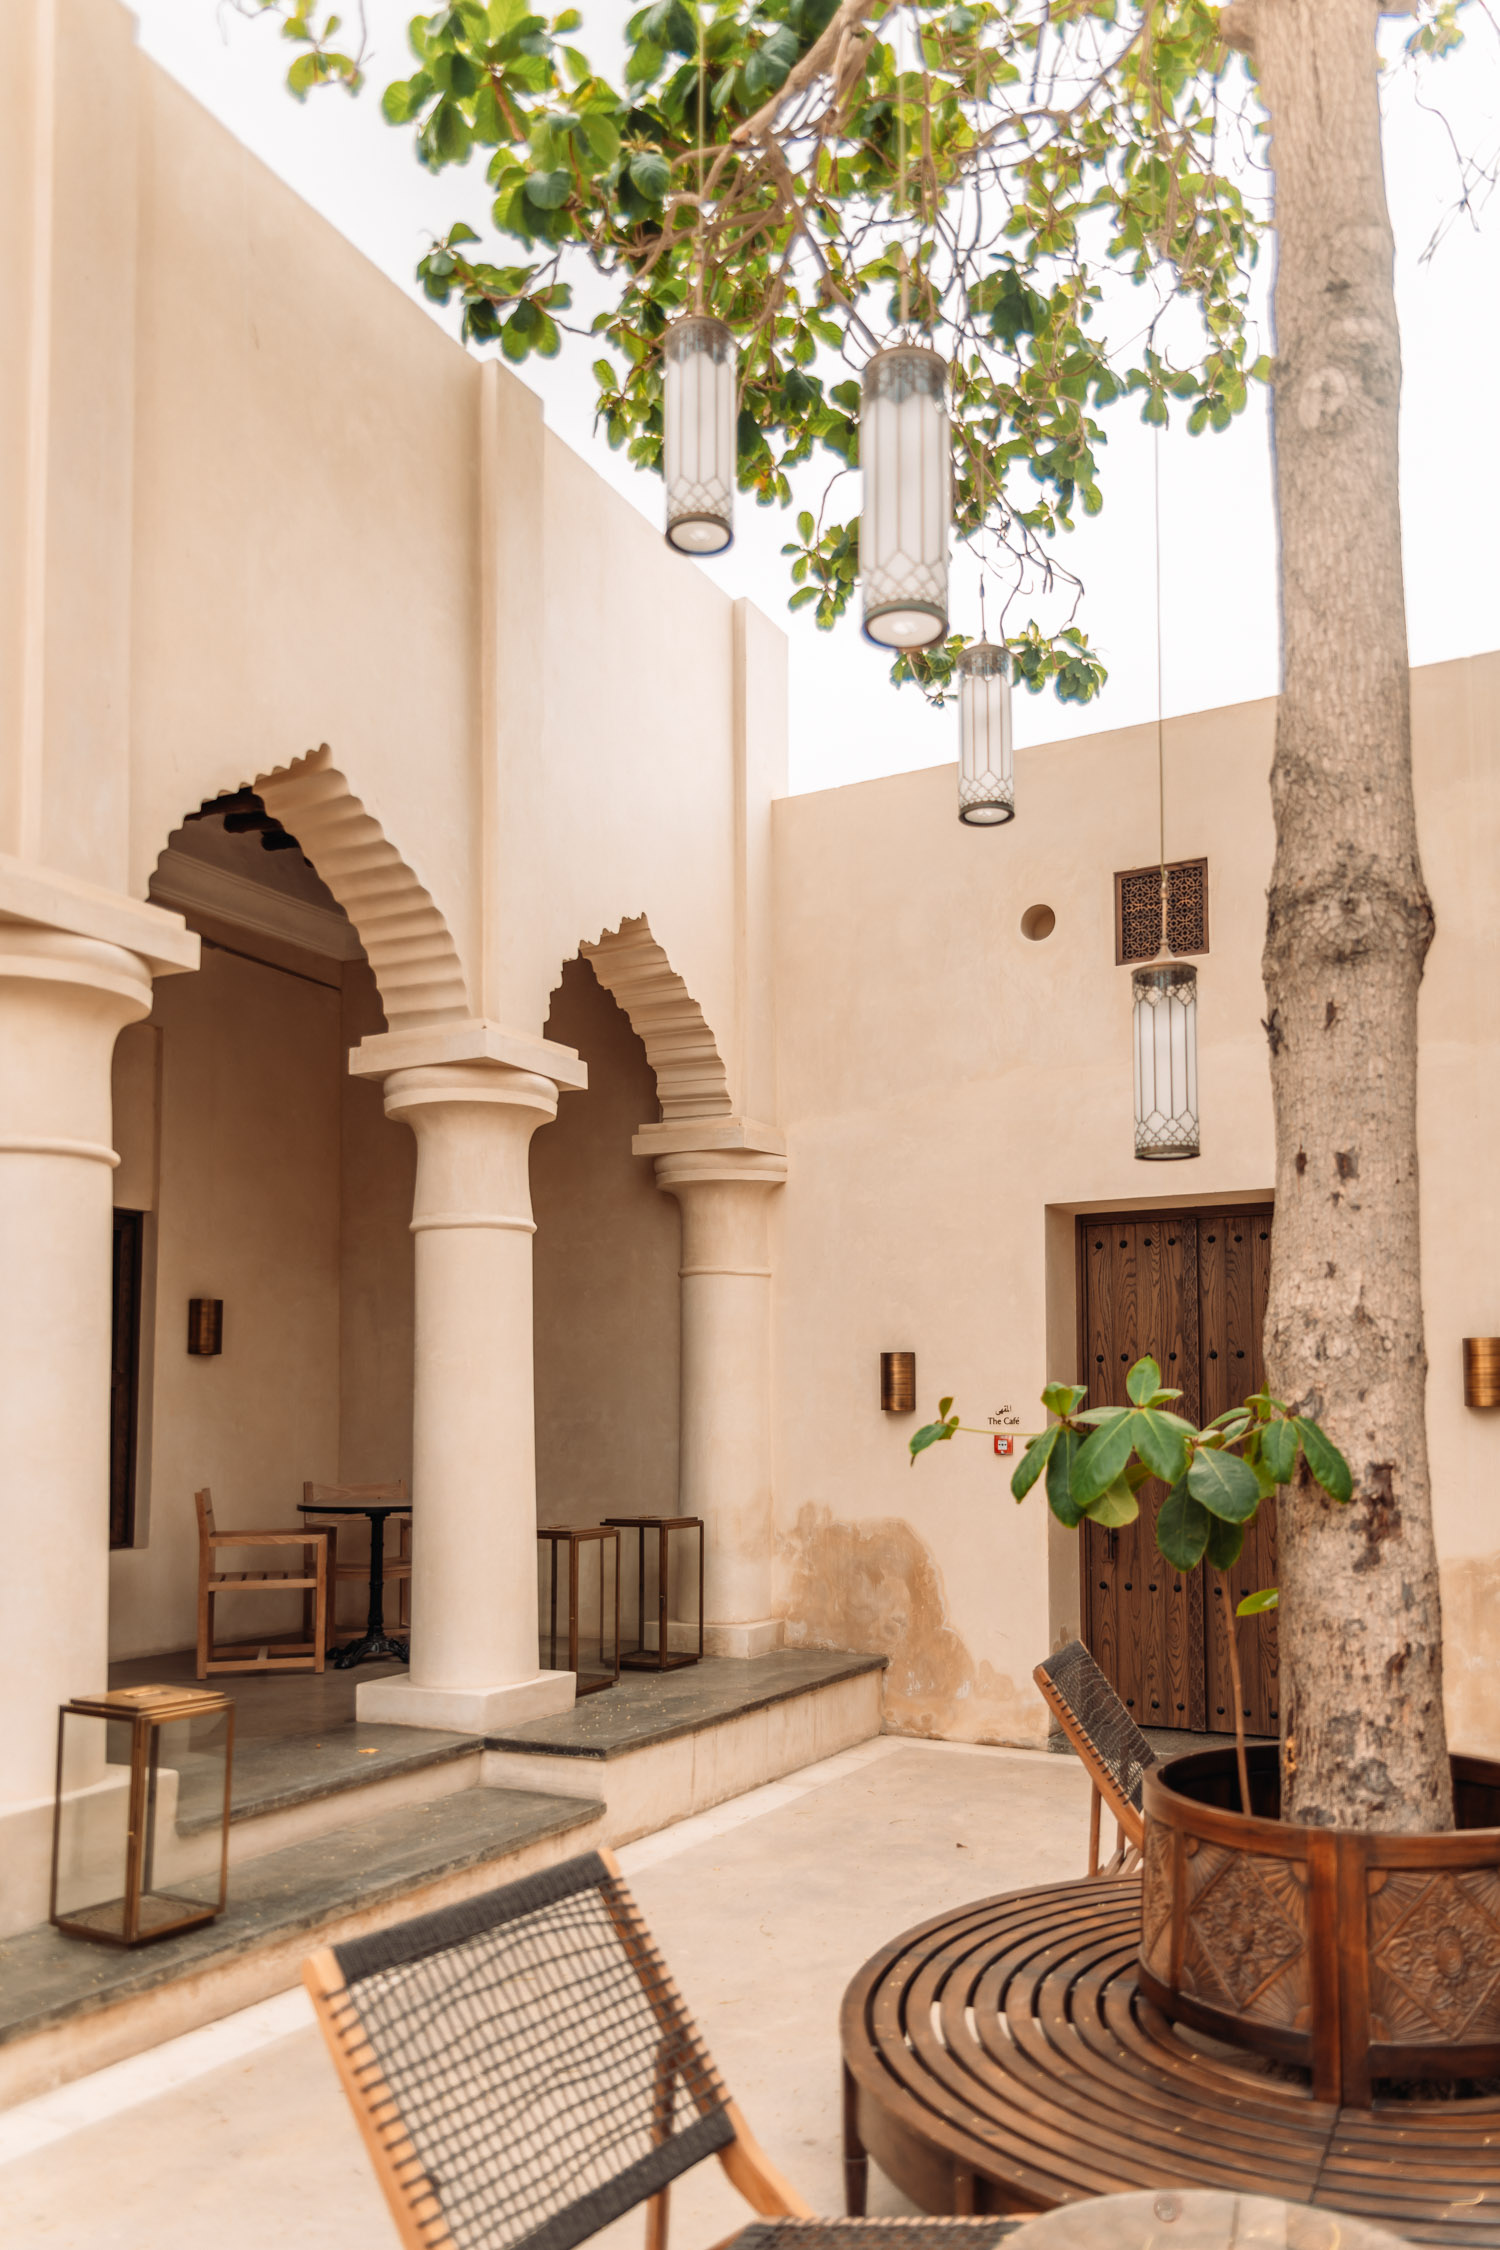 The Café at Al Bait Sharjah